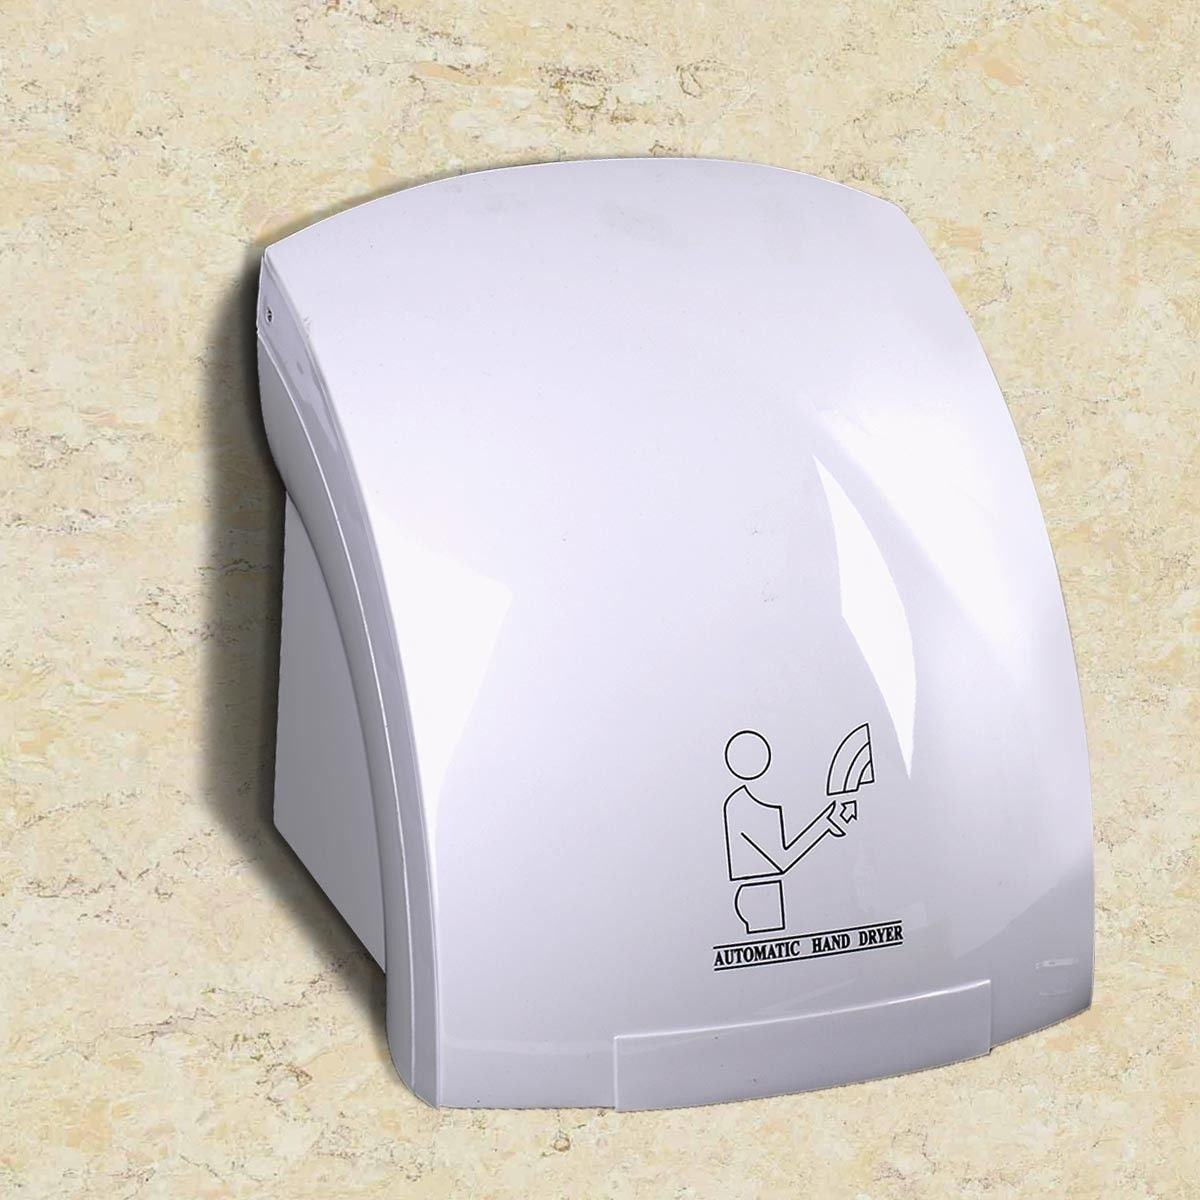 Superior Amazon.com: Household Hotel Automatic Infared Sensor Hand Dryer Bathroom  Hands Drying Device: Home U0026 Kitchen